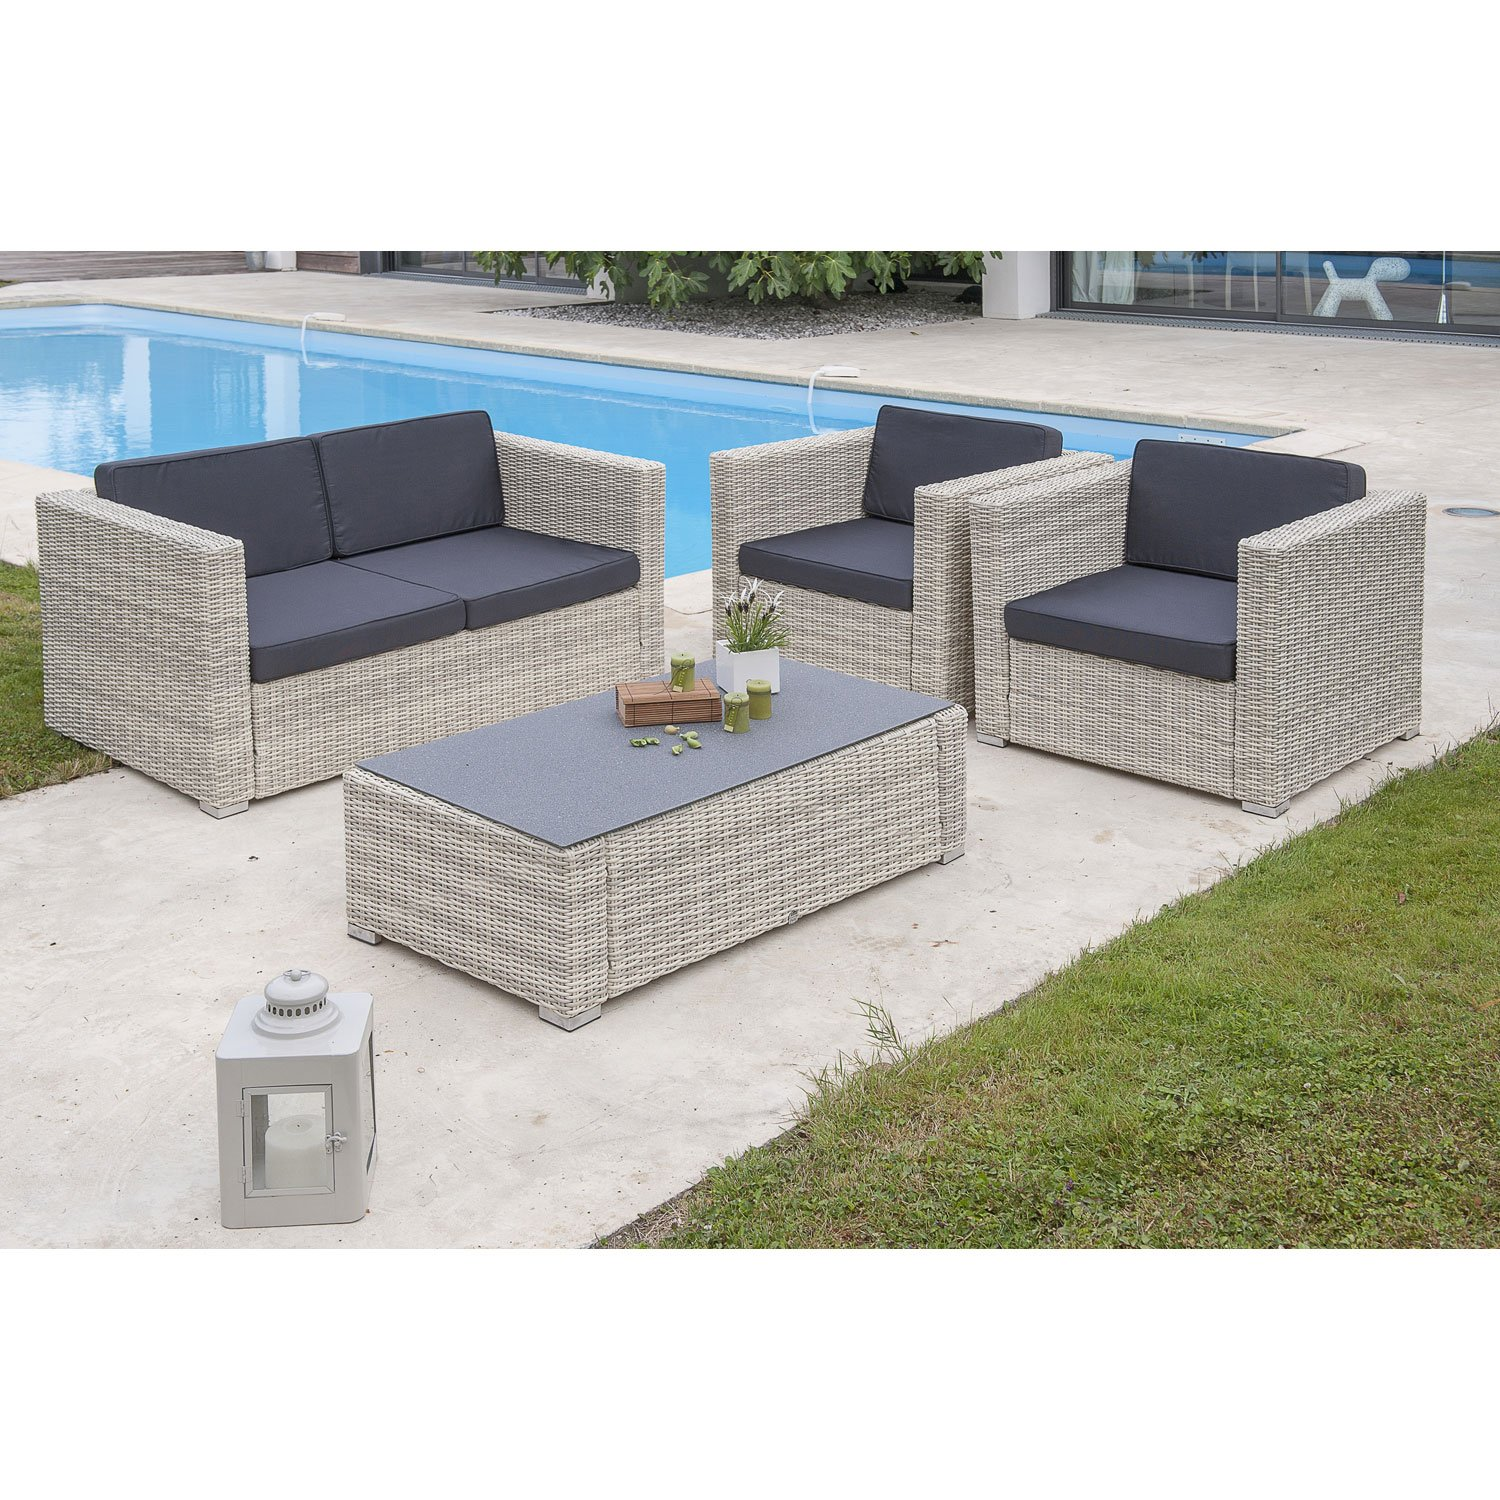 salon bas de jardin oceane salon resine tressee blanc table canape 2 fauteuils